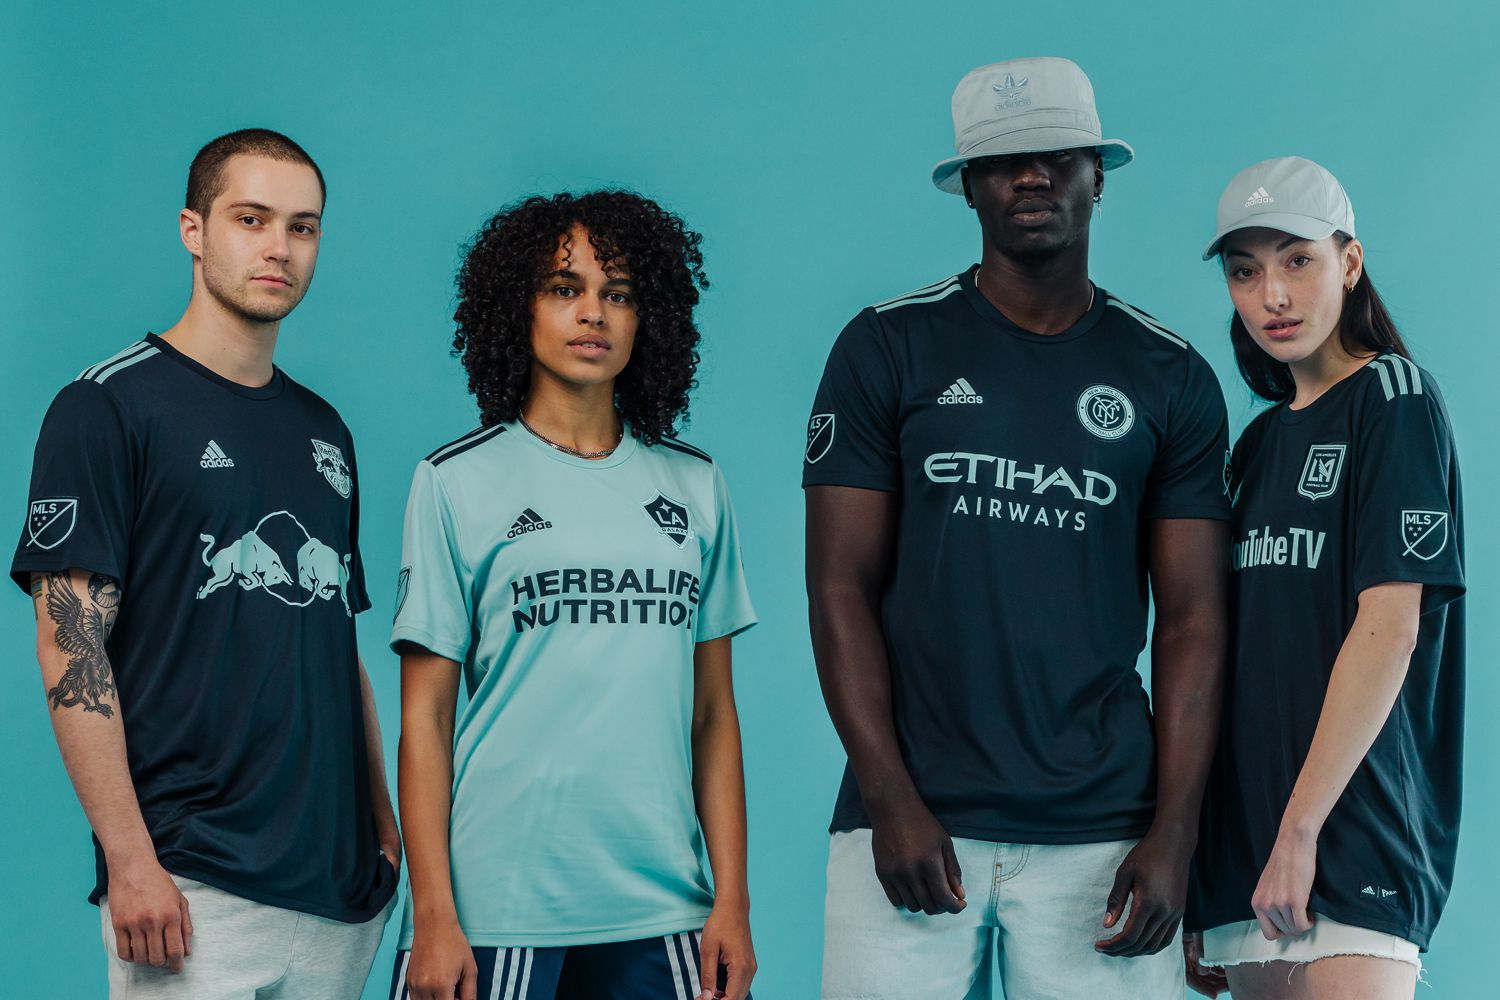 A selection of the 2019 adidas Parley kits for MLS.